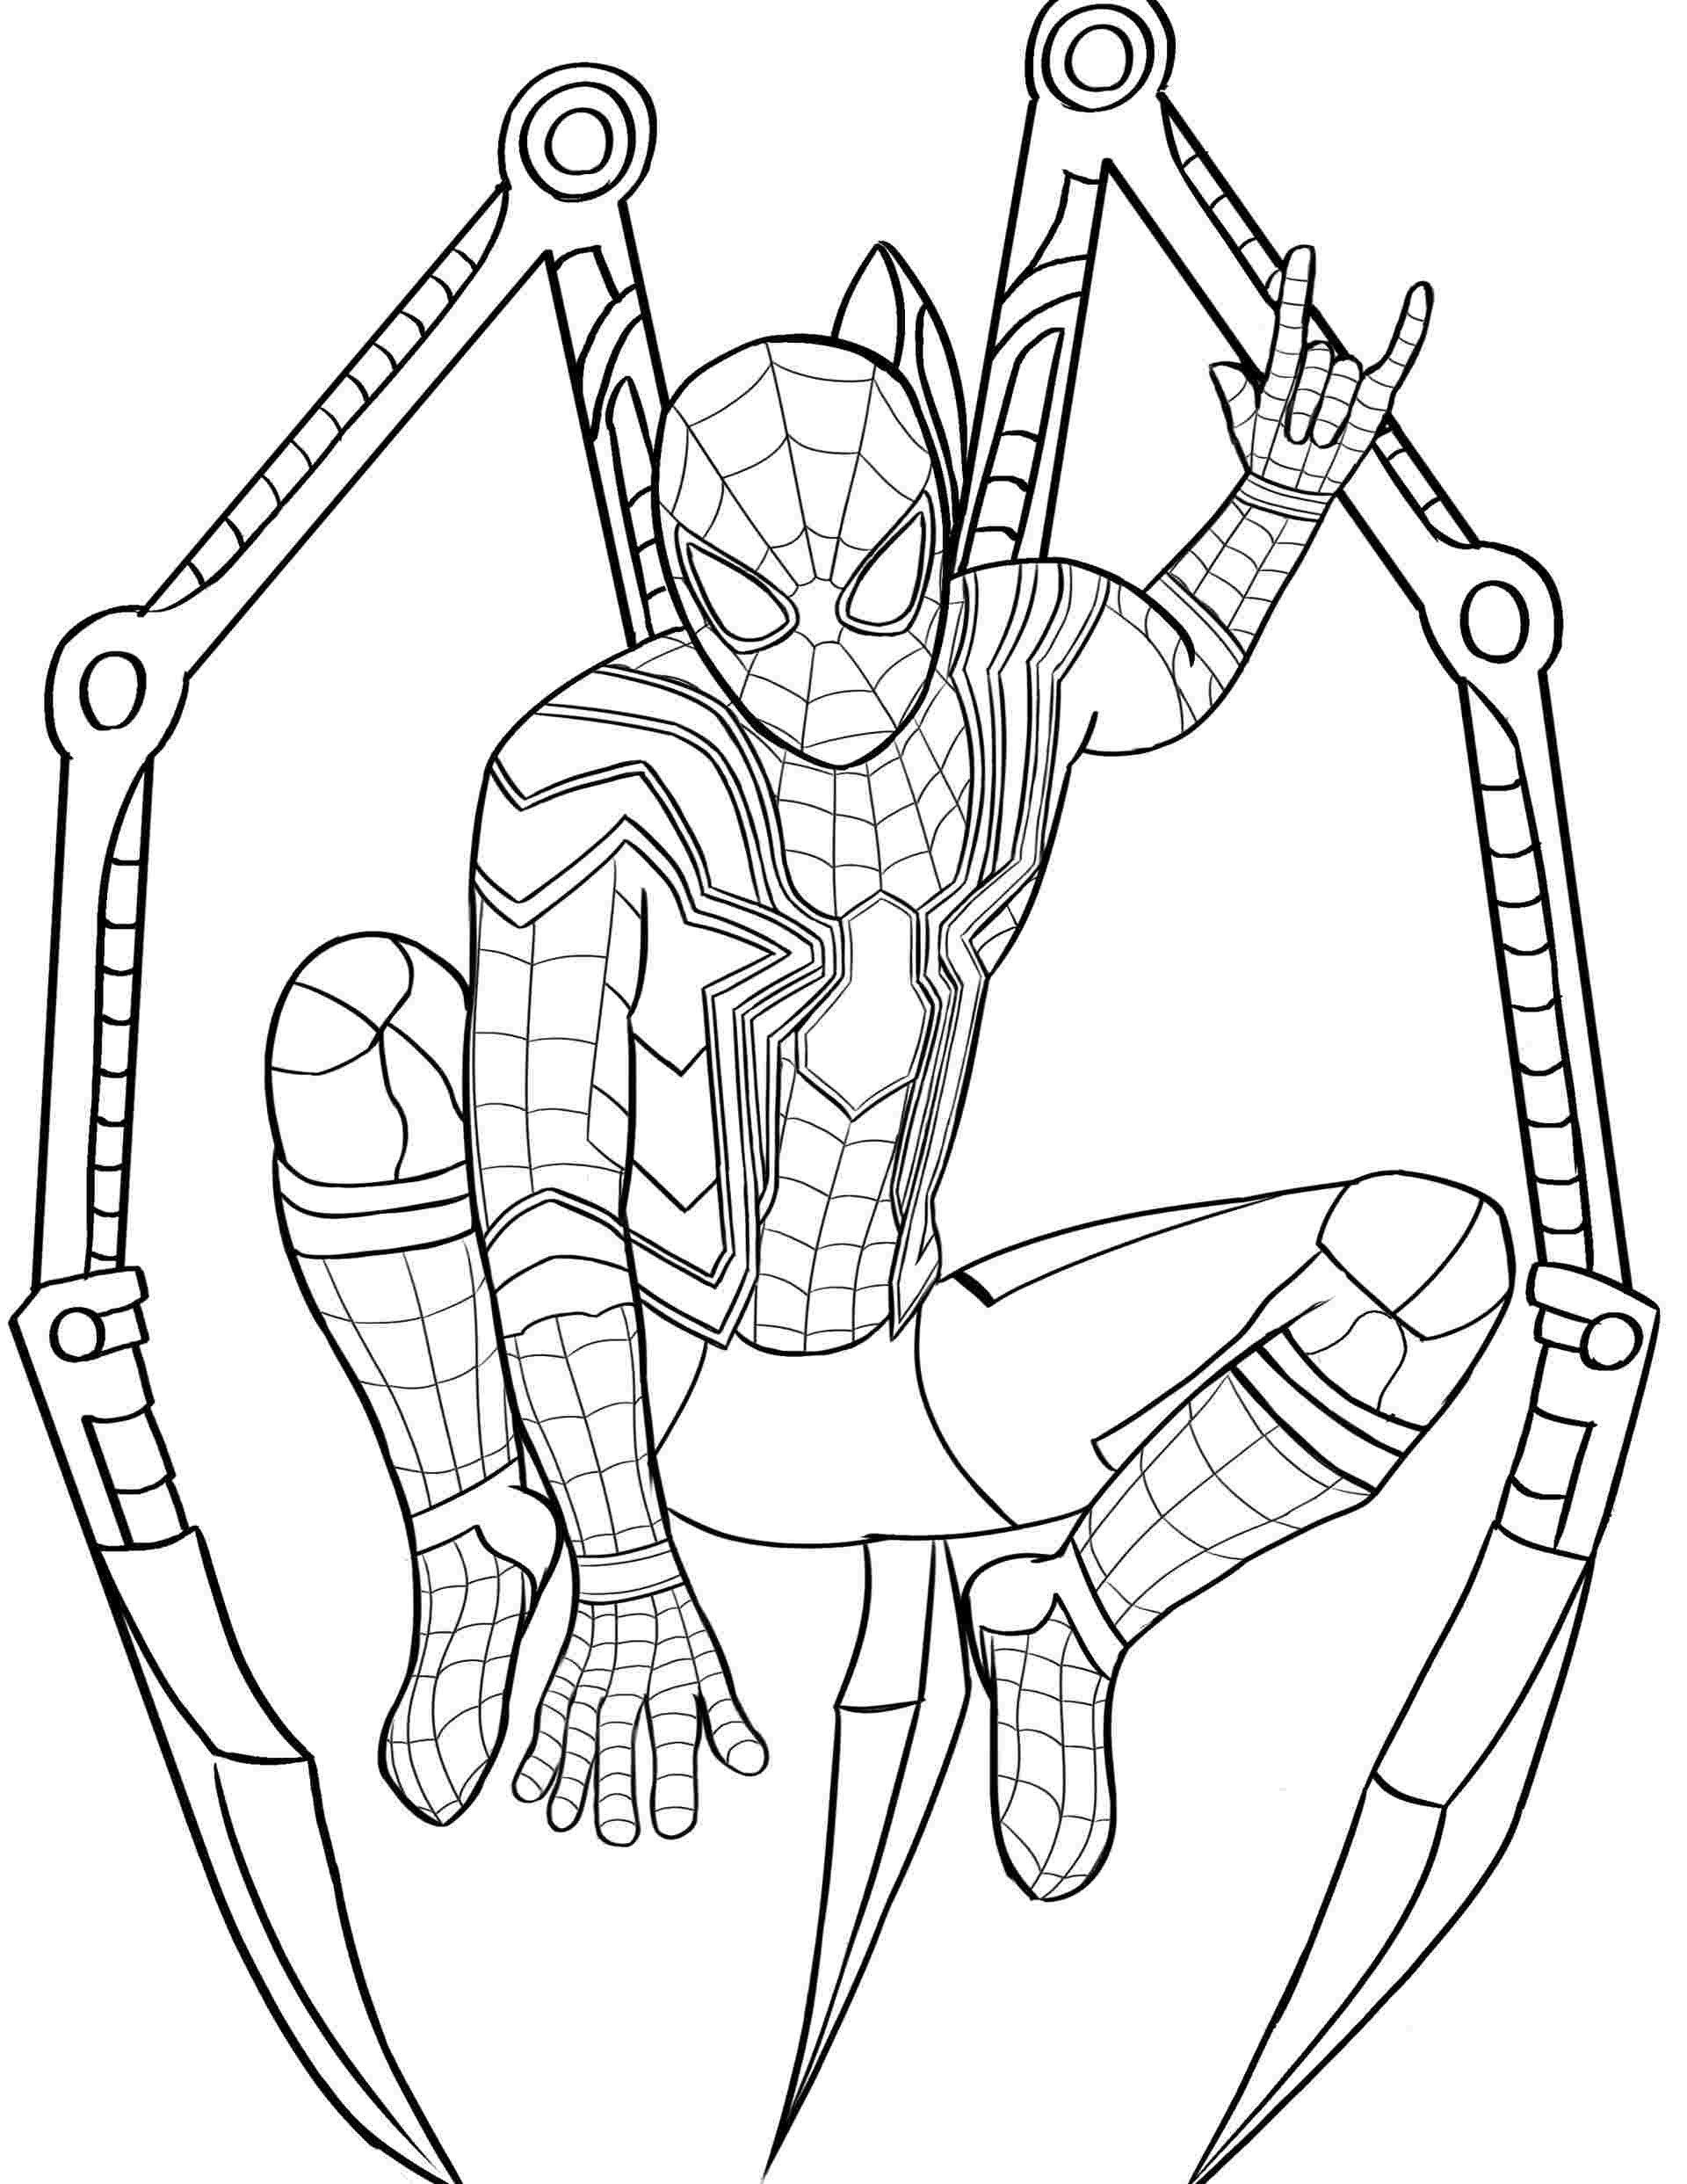 coloring spider man far from home lego spiderman coloring pages spider man far from home far from man home coloring spider